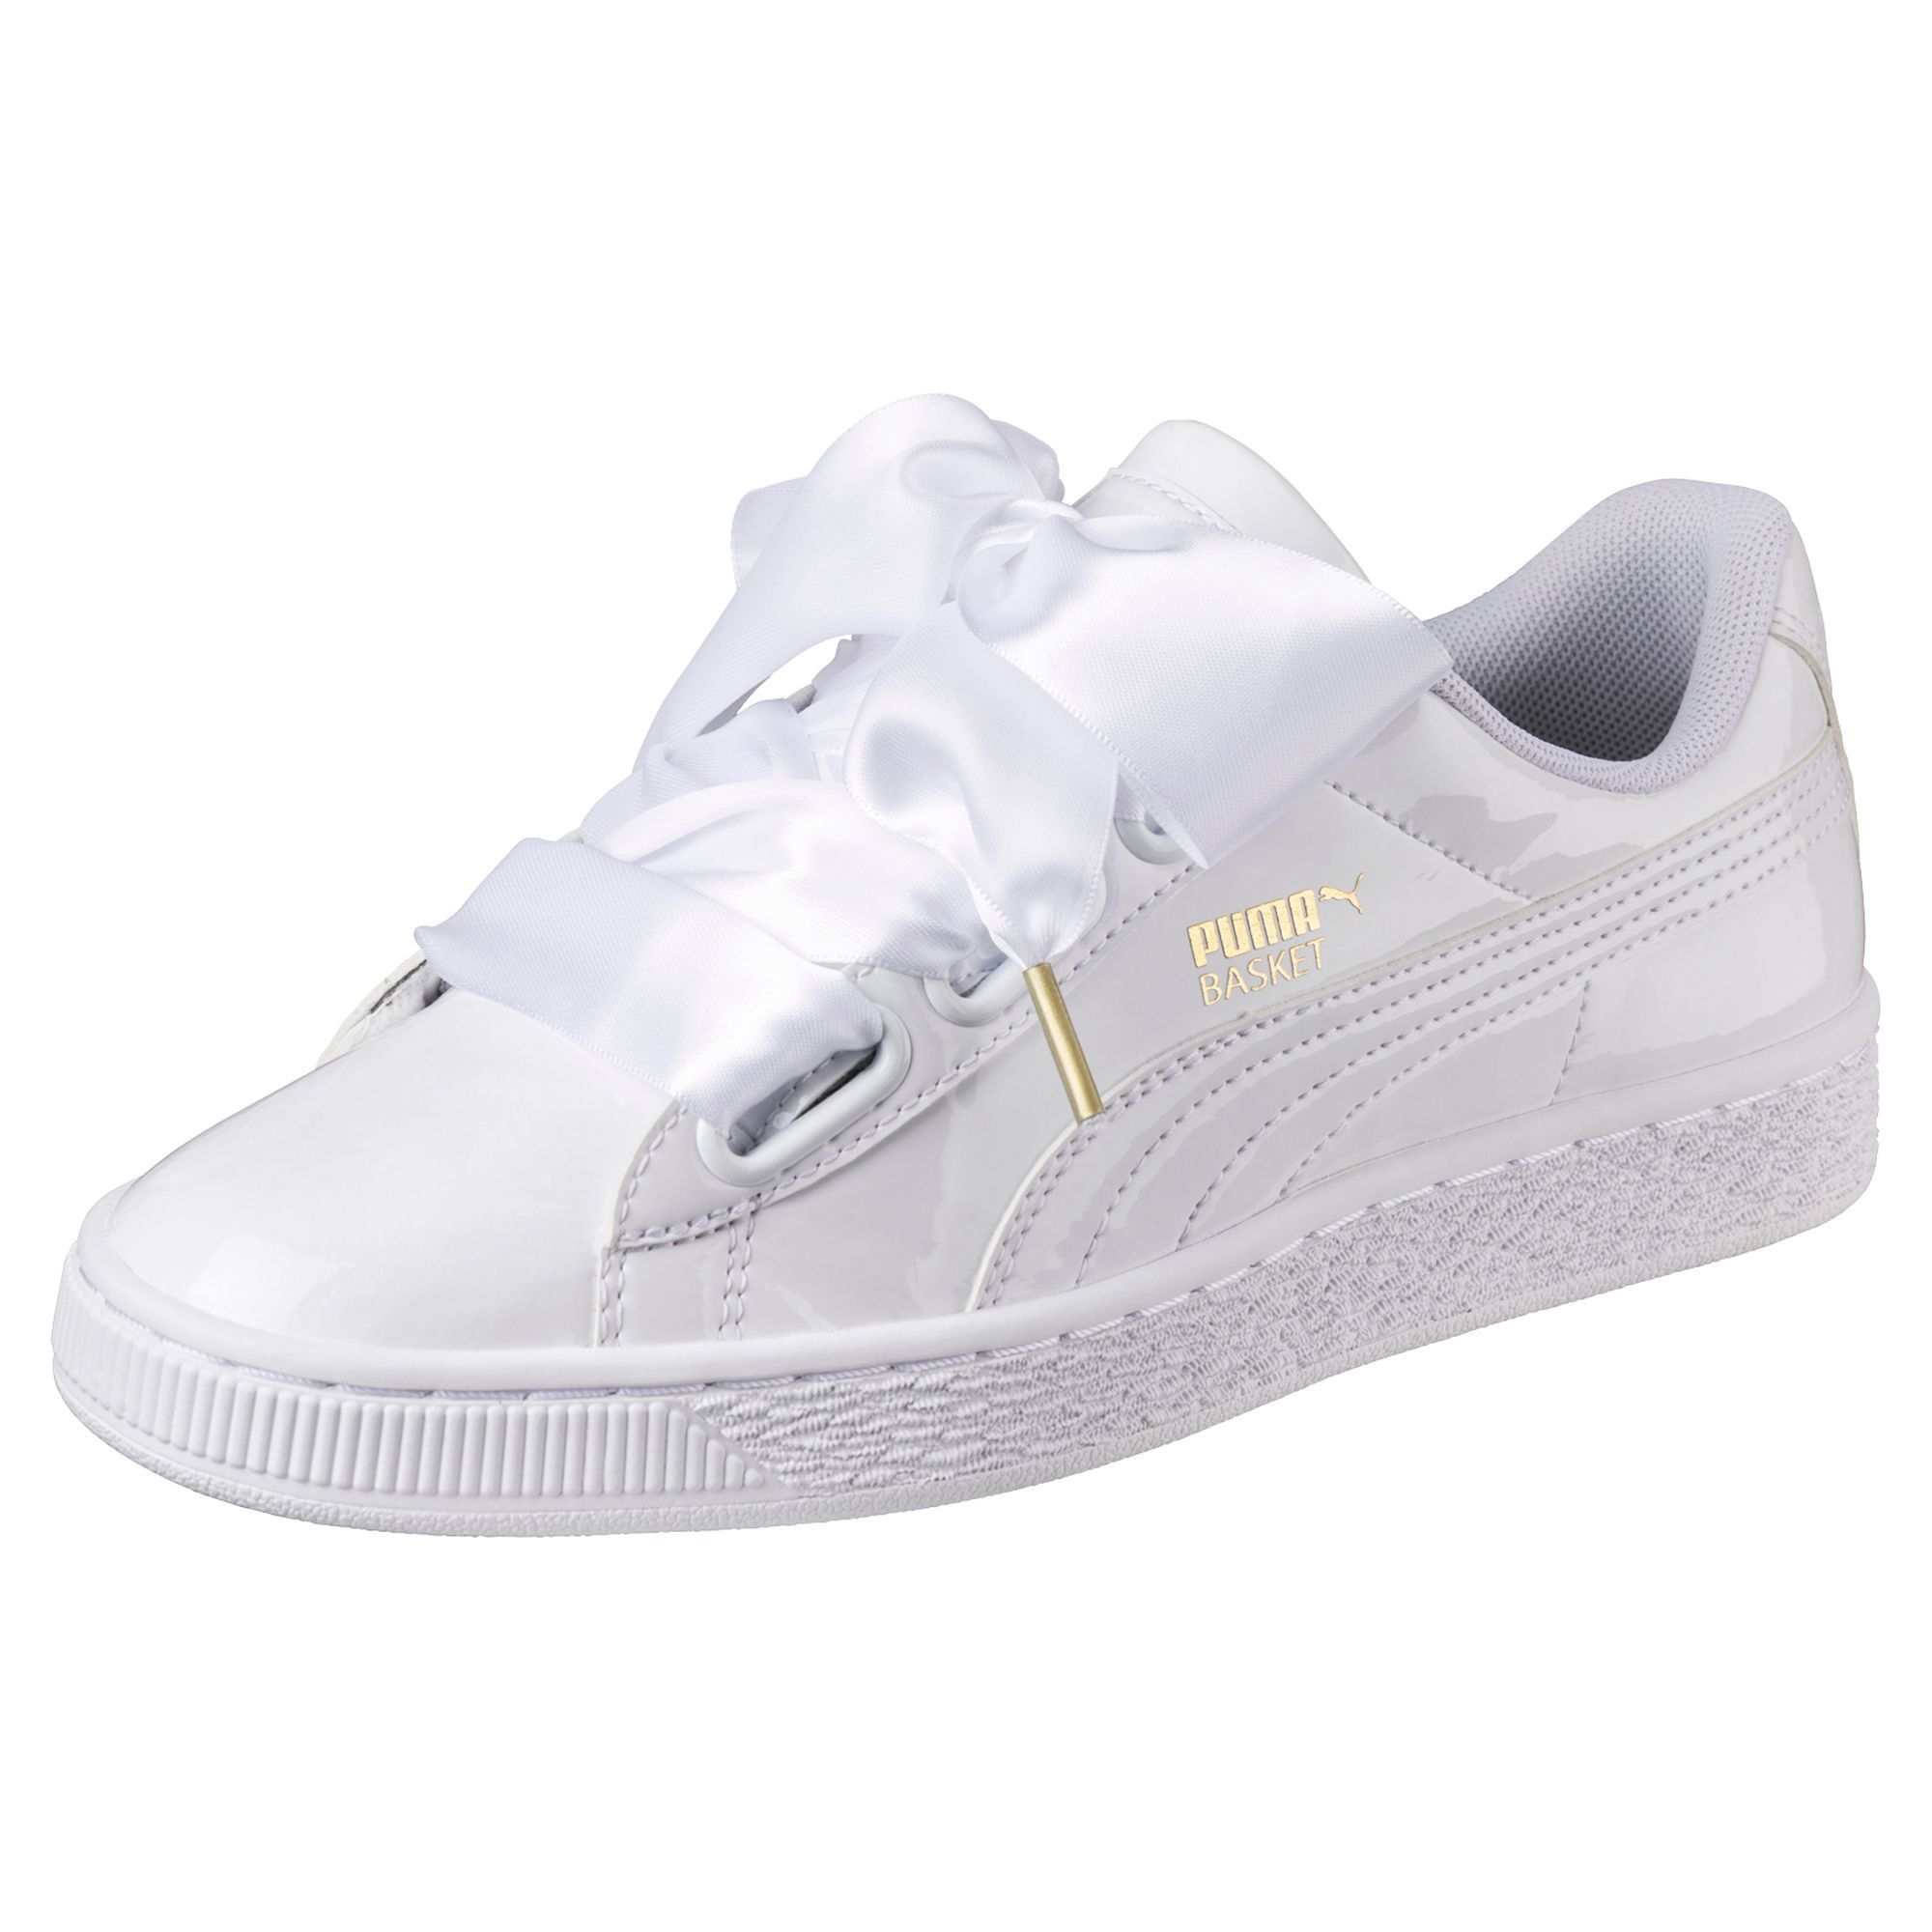 12ee427a58234c Puma basket heart patent womens sneakers